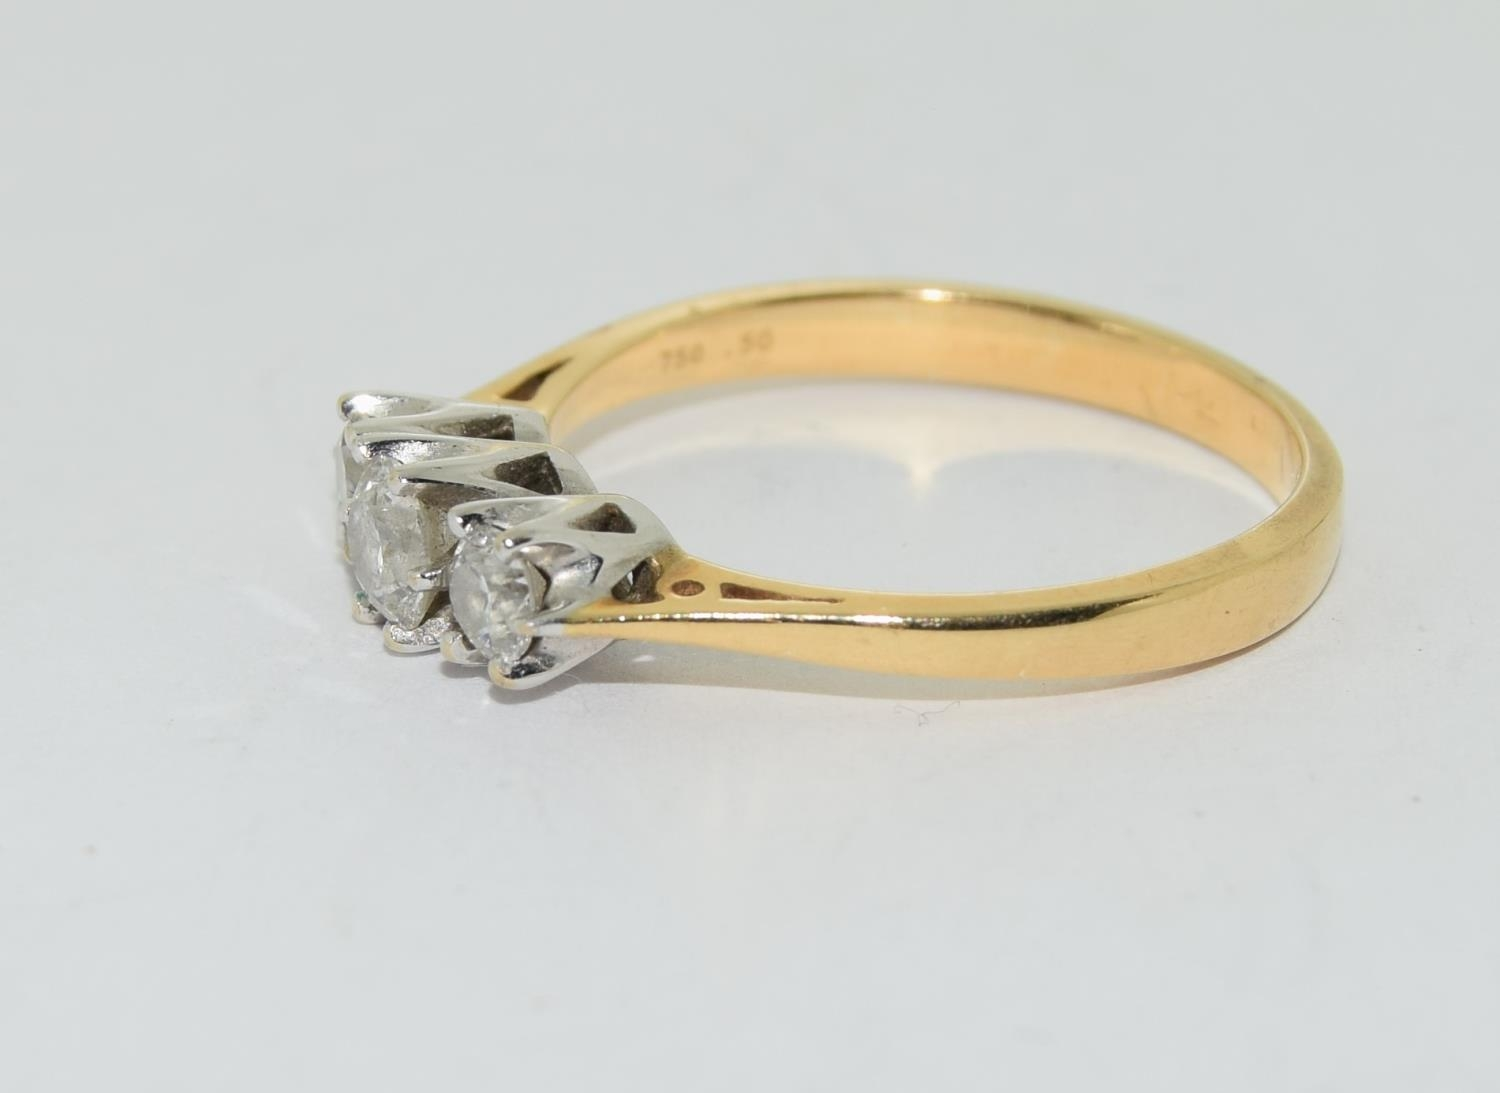 Diamond 3 stone aprox 0.50 points 18ct gold ring size O. - Image 4 of 5